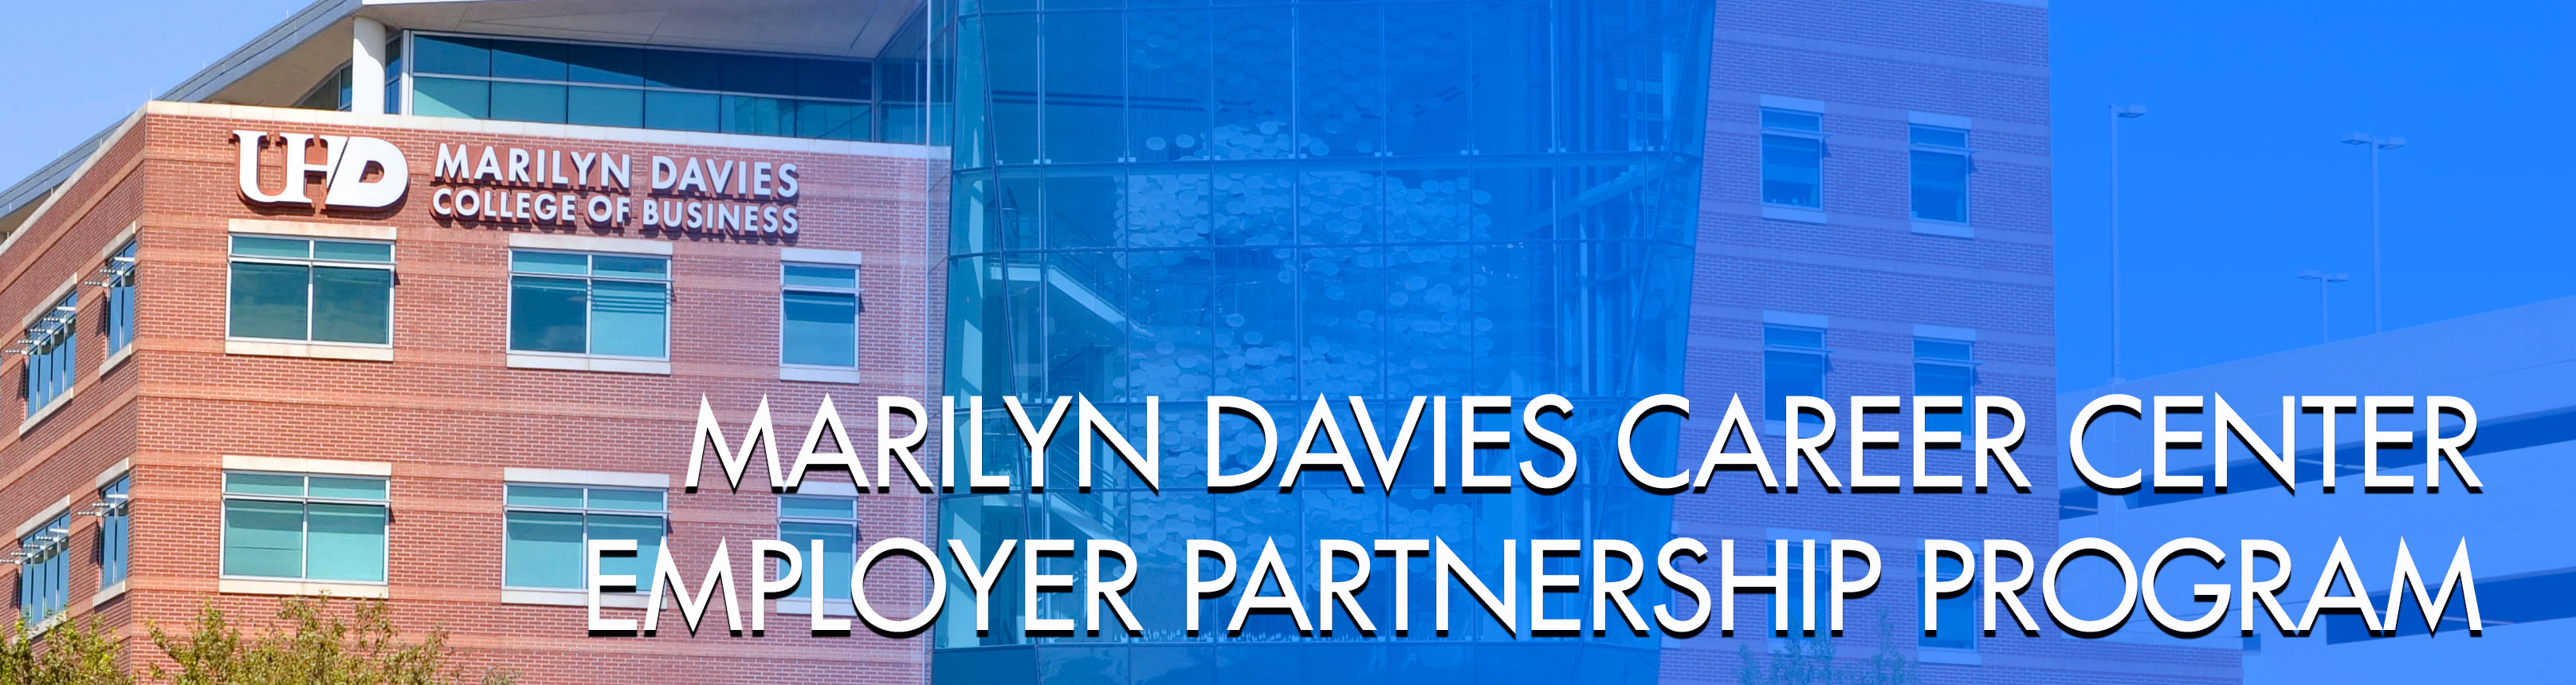 Marilyn Davies Career Center, Employer Partnership Program